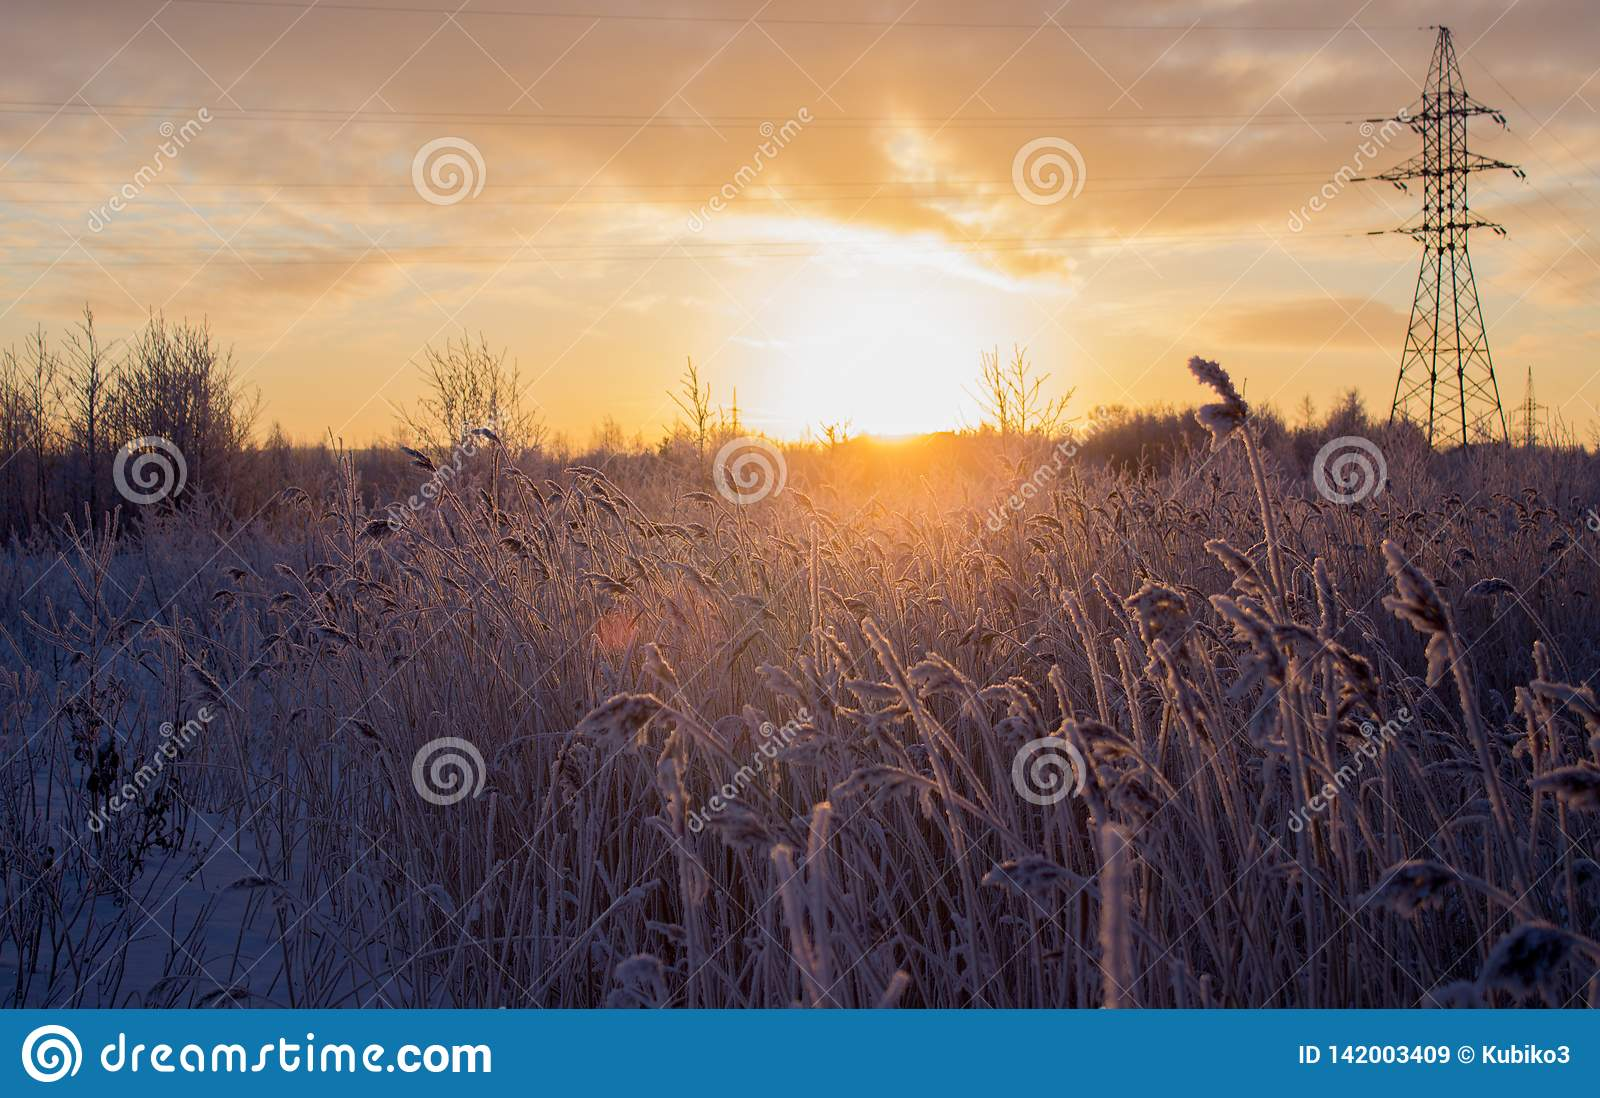 Beautiful winter landscape, in a field with snow-covered tall grass.